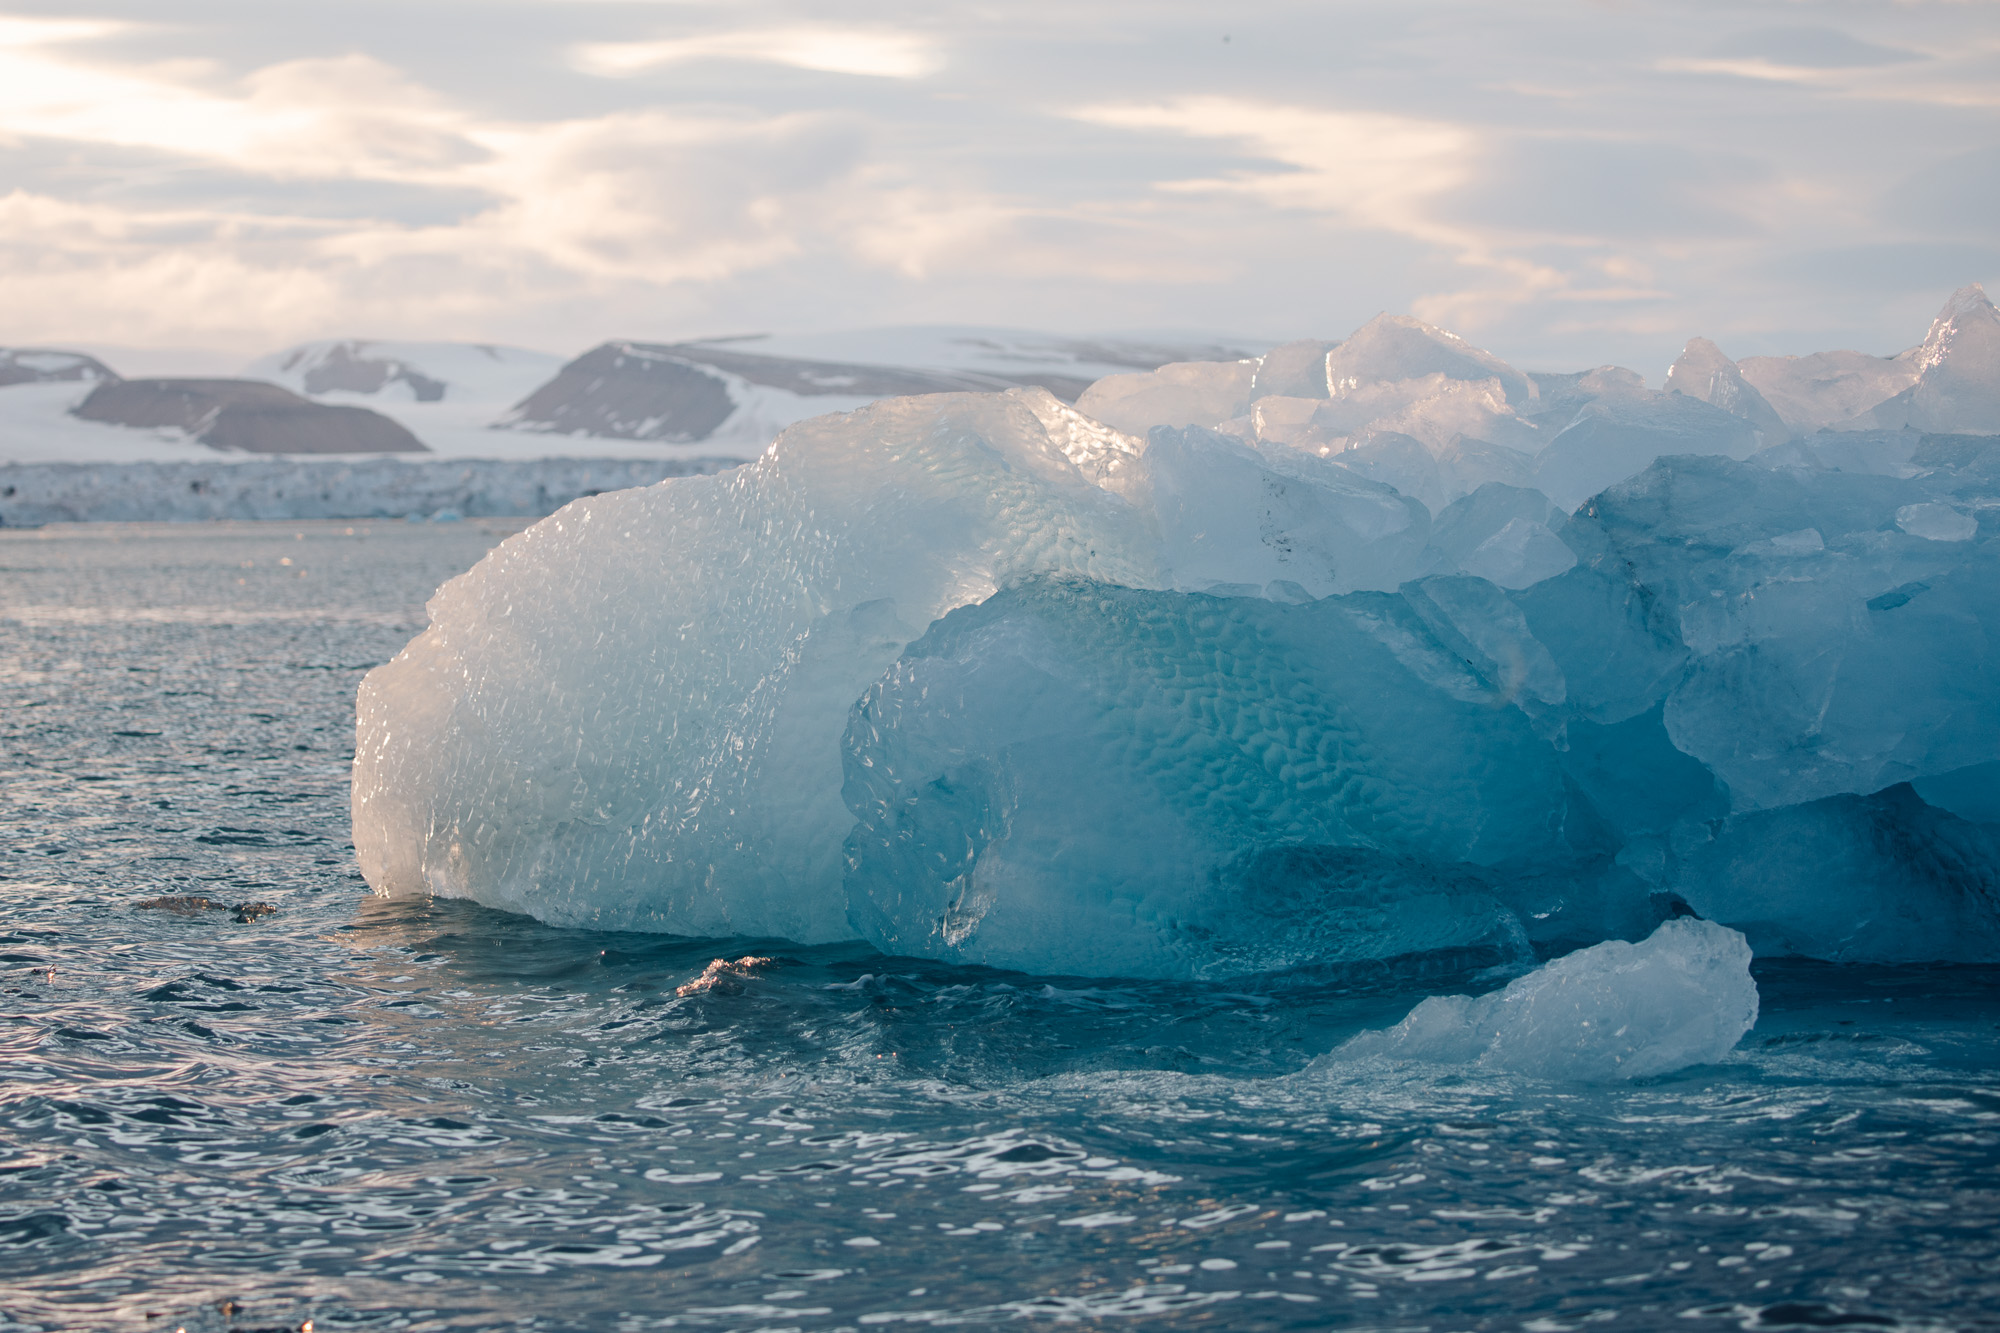 Iceberg from a glacier wall in Svalbard